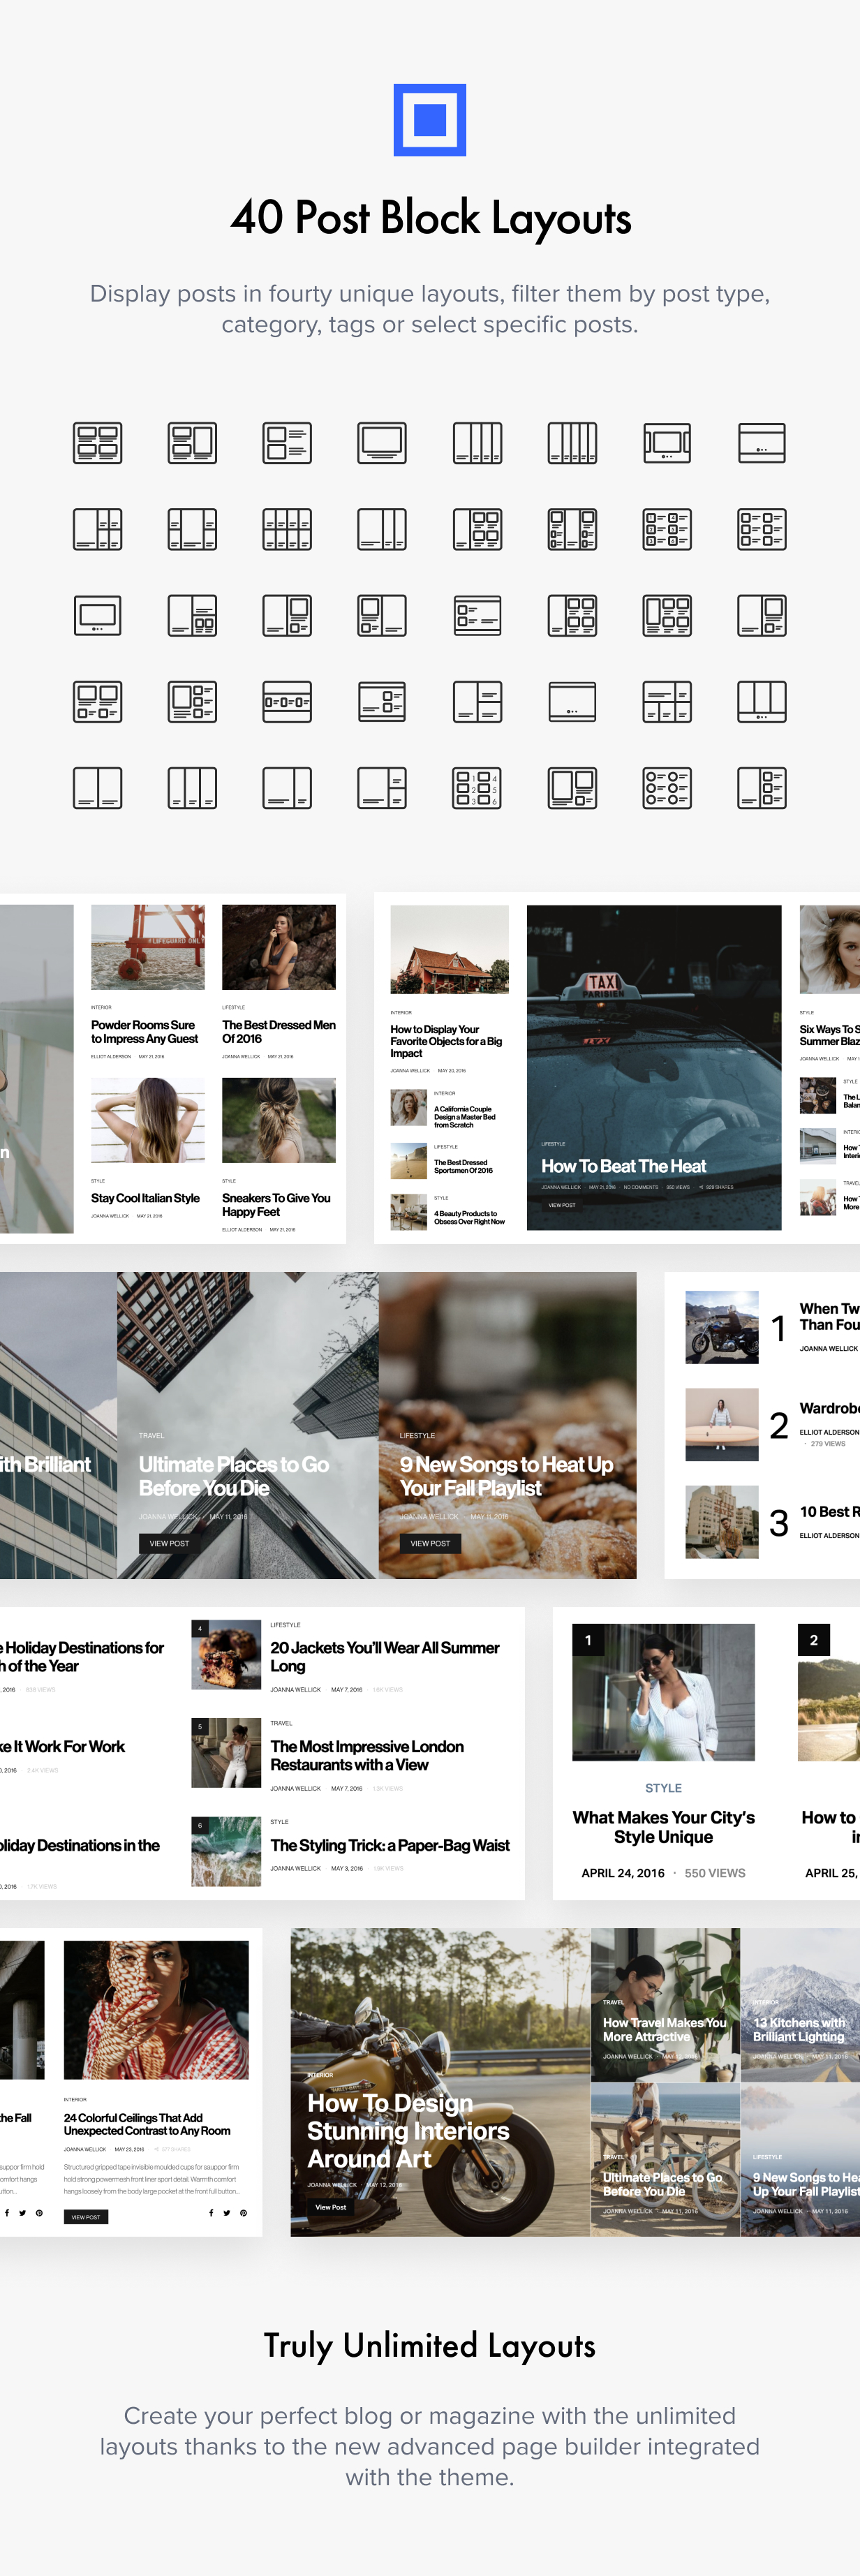 block layouts - Authentic - Lifestyle Blog & Magazine WordPress Theme